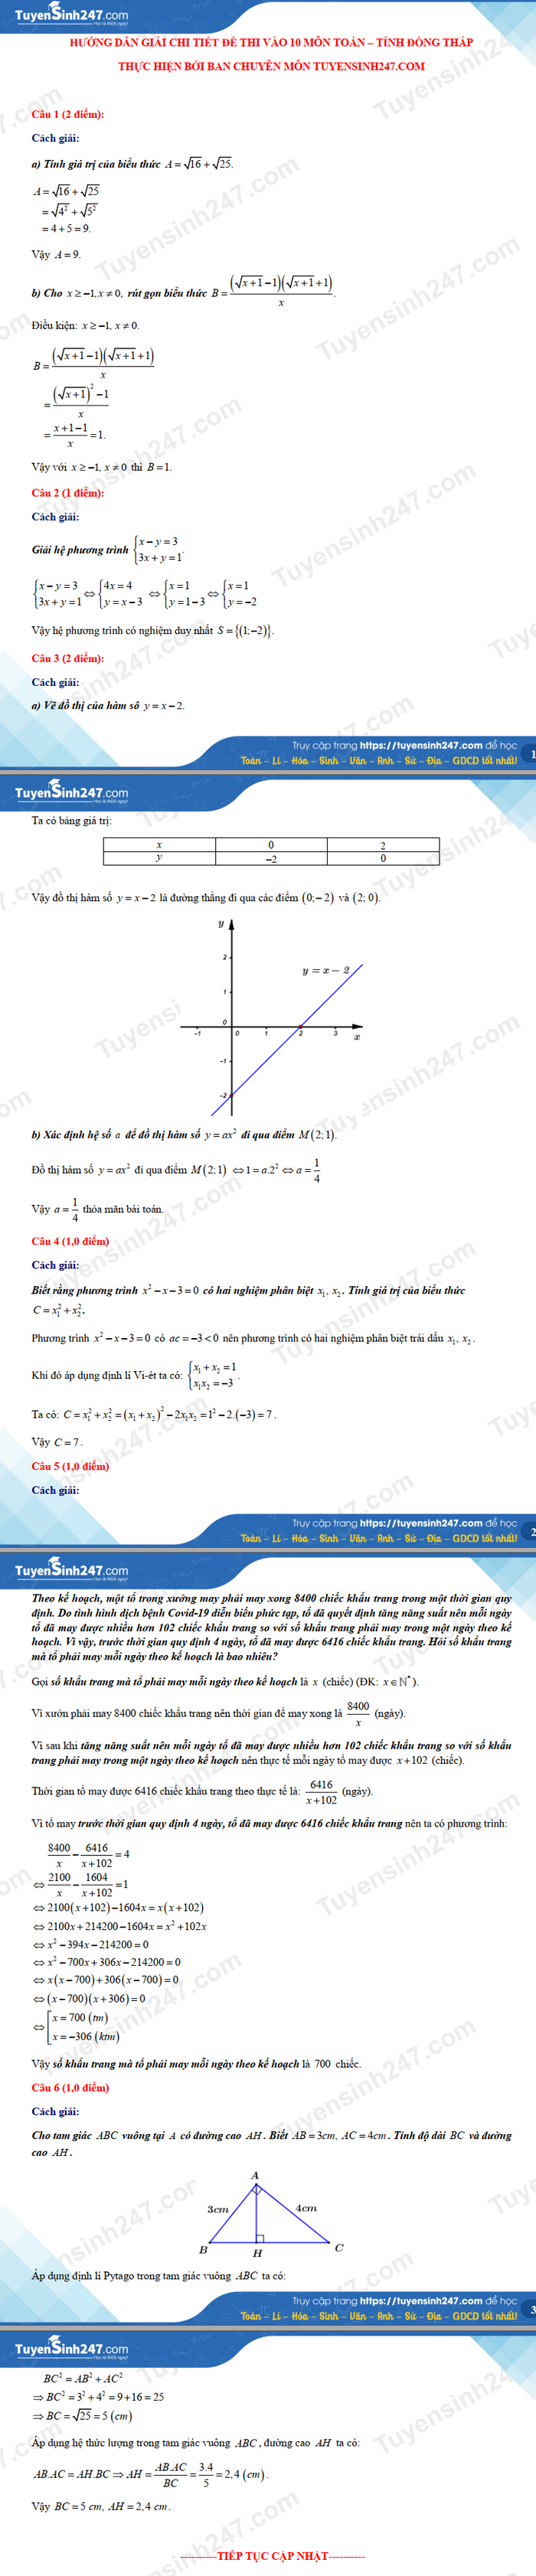 Answers to the 10th grade math exam in Dong Thap province in 2021 2